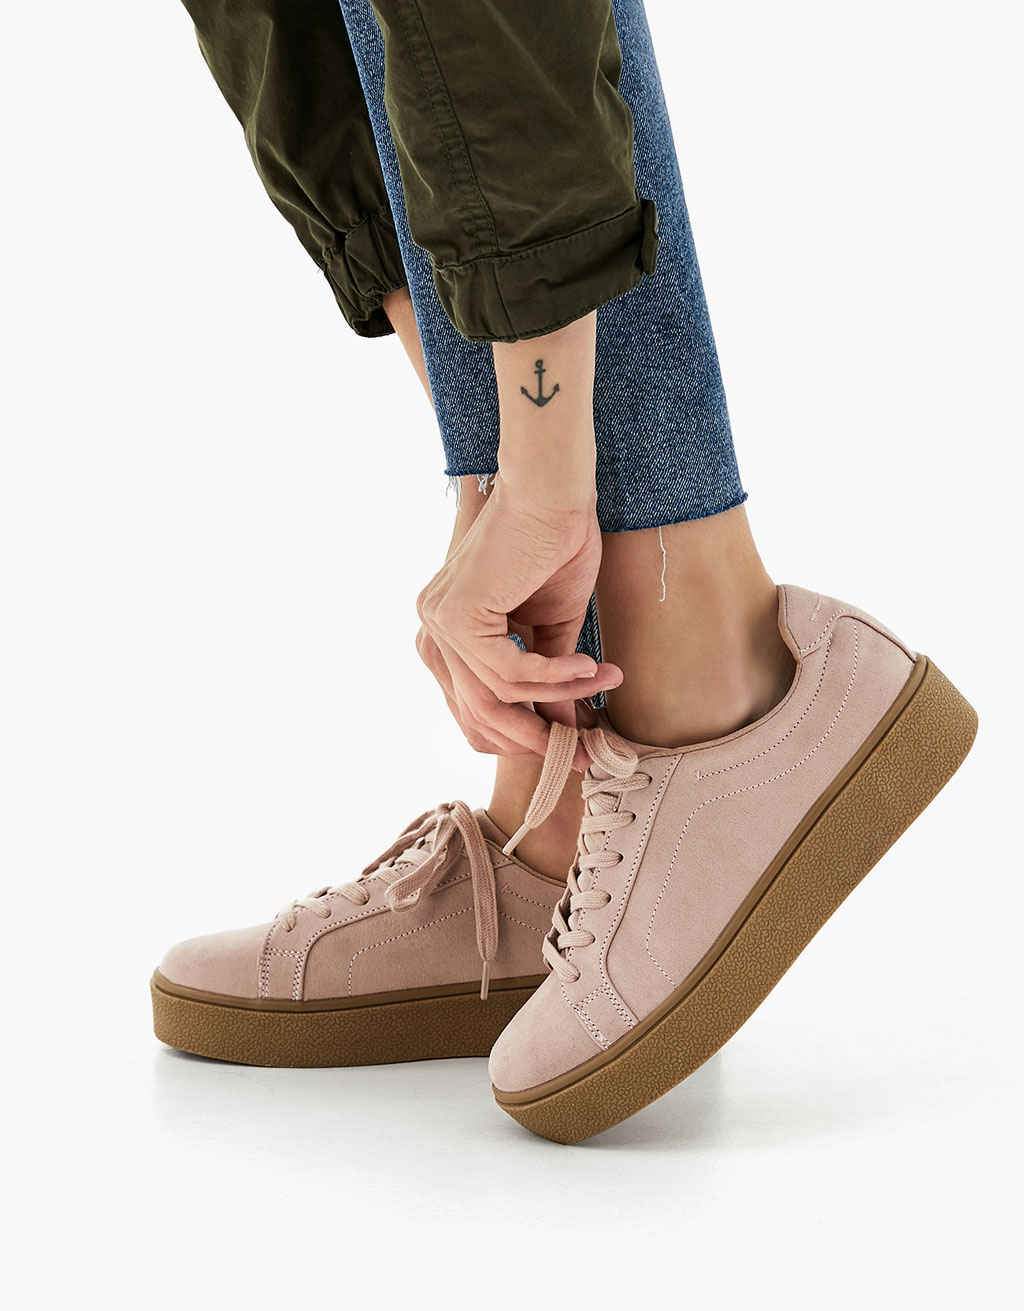 Fashion lace-up platform sneakers